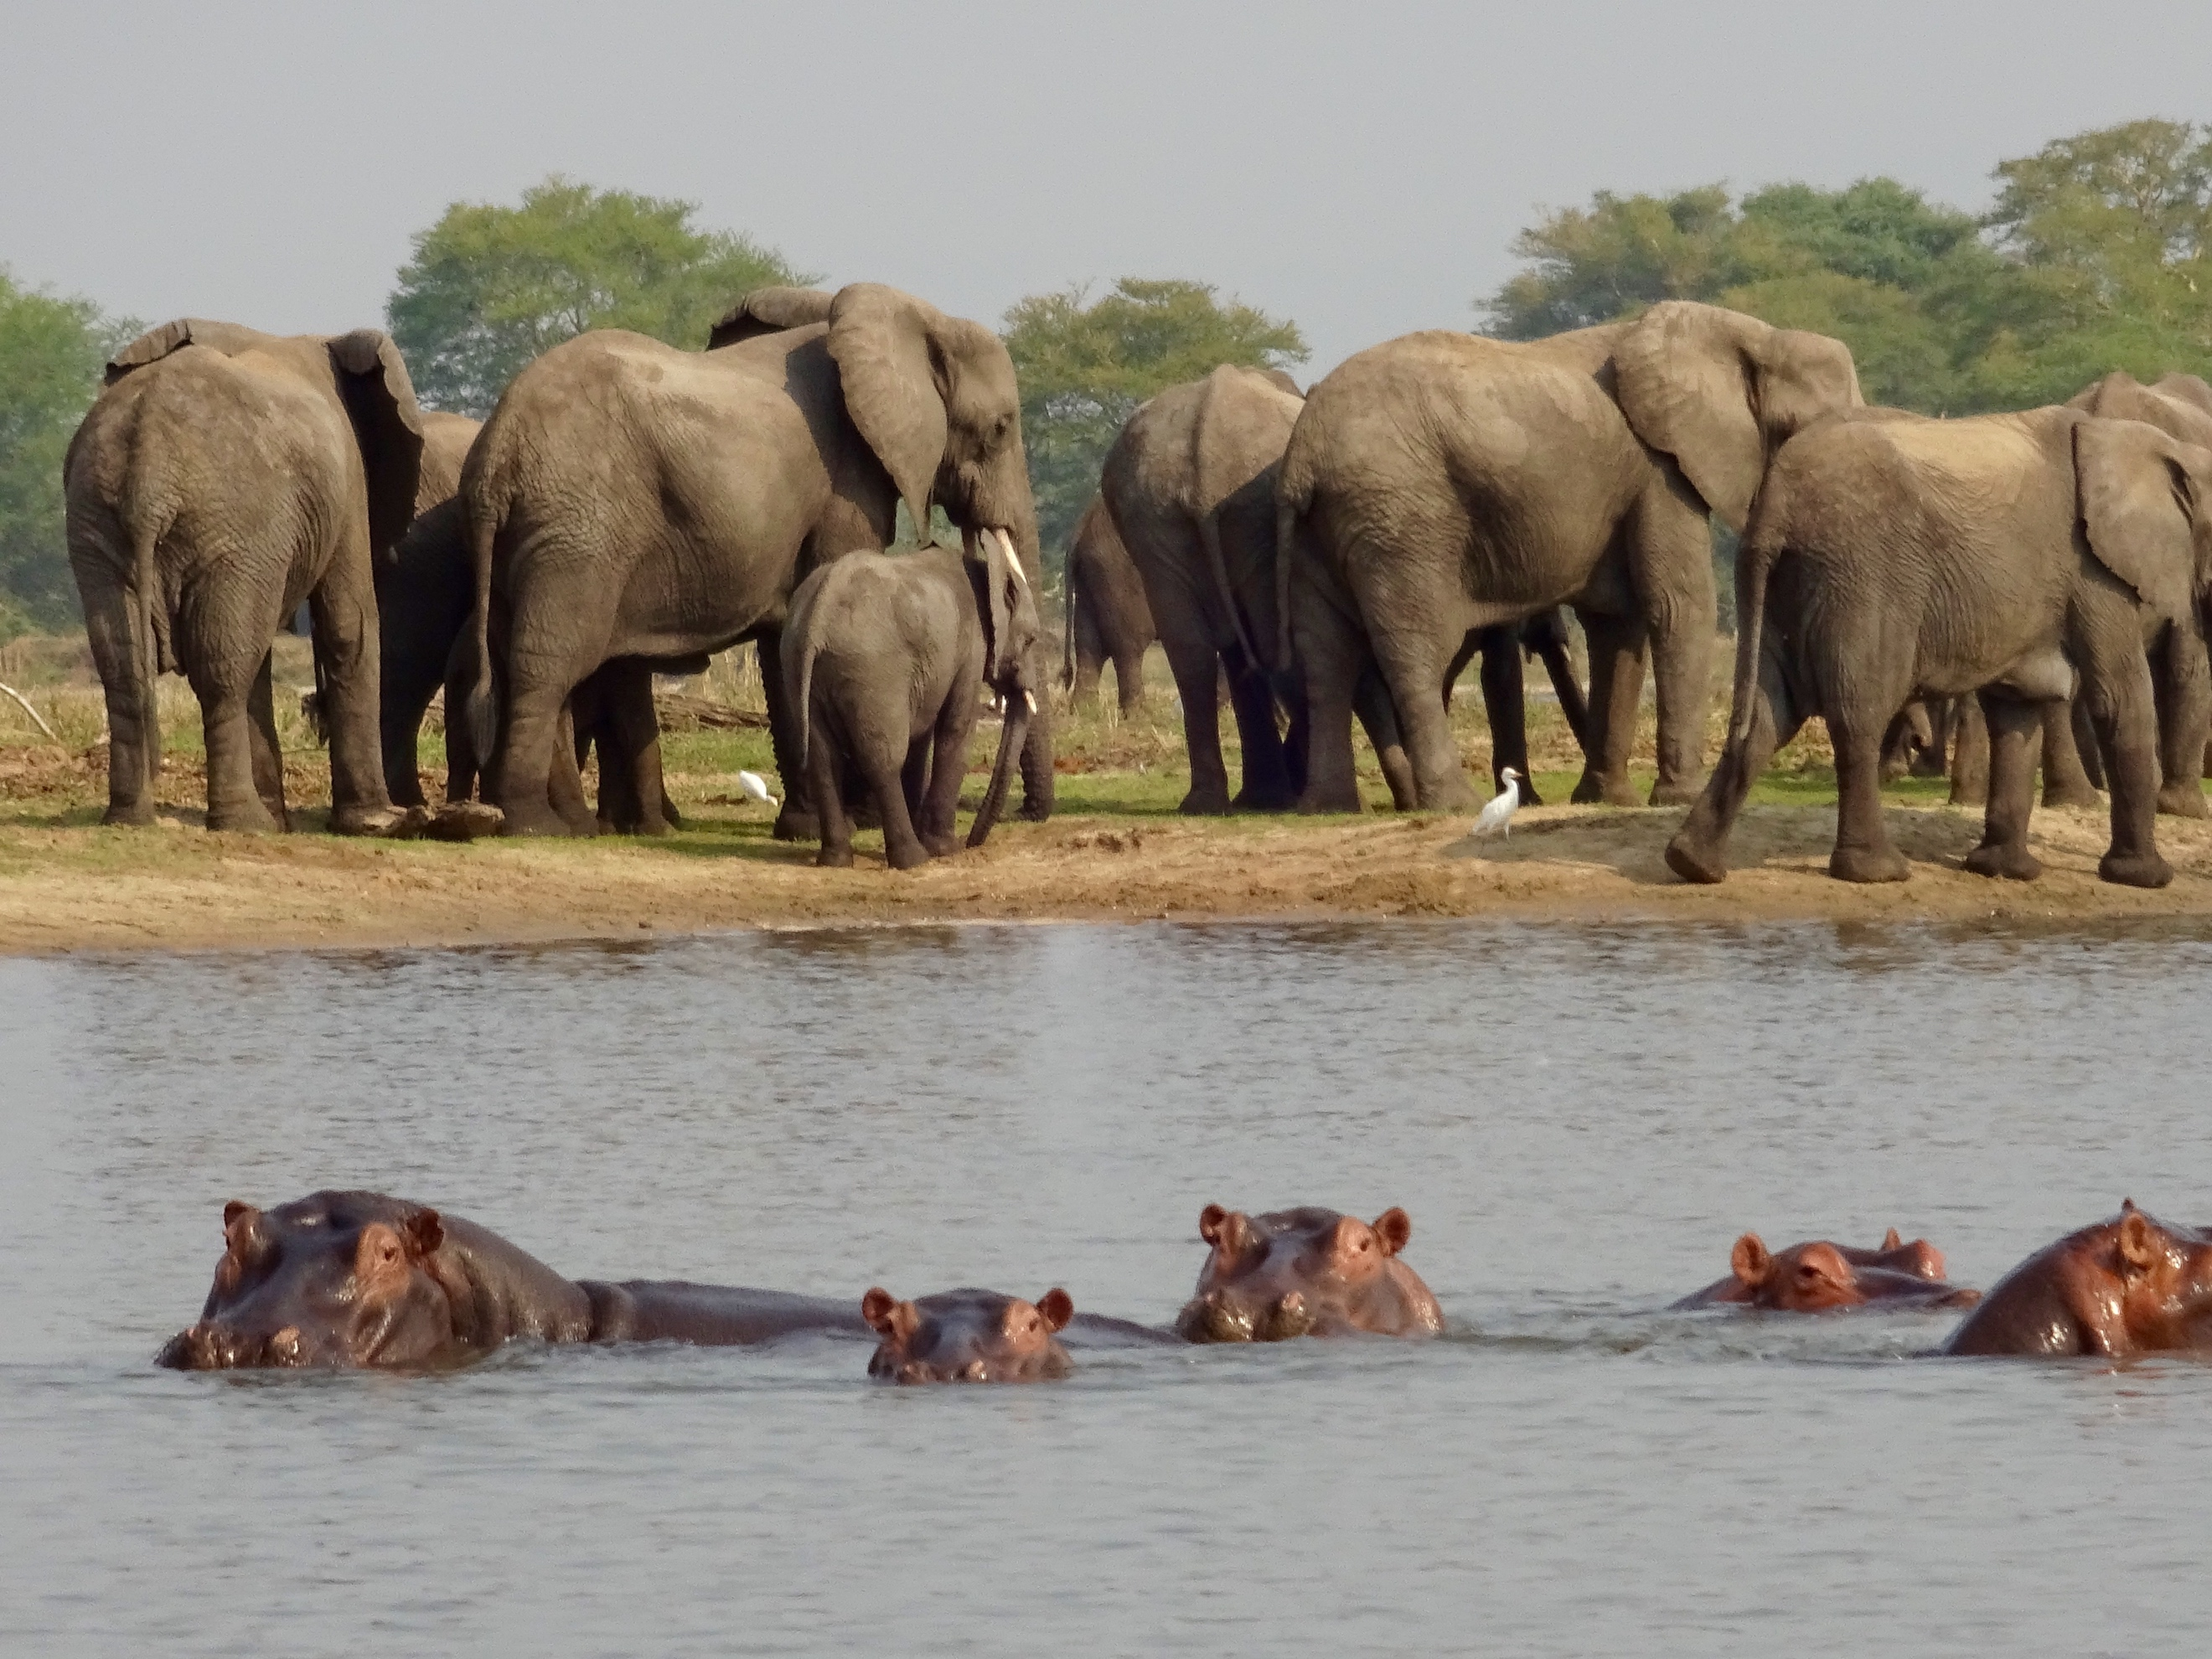 Elephants and Hippos in Malawi